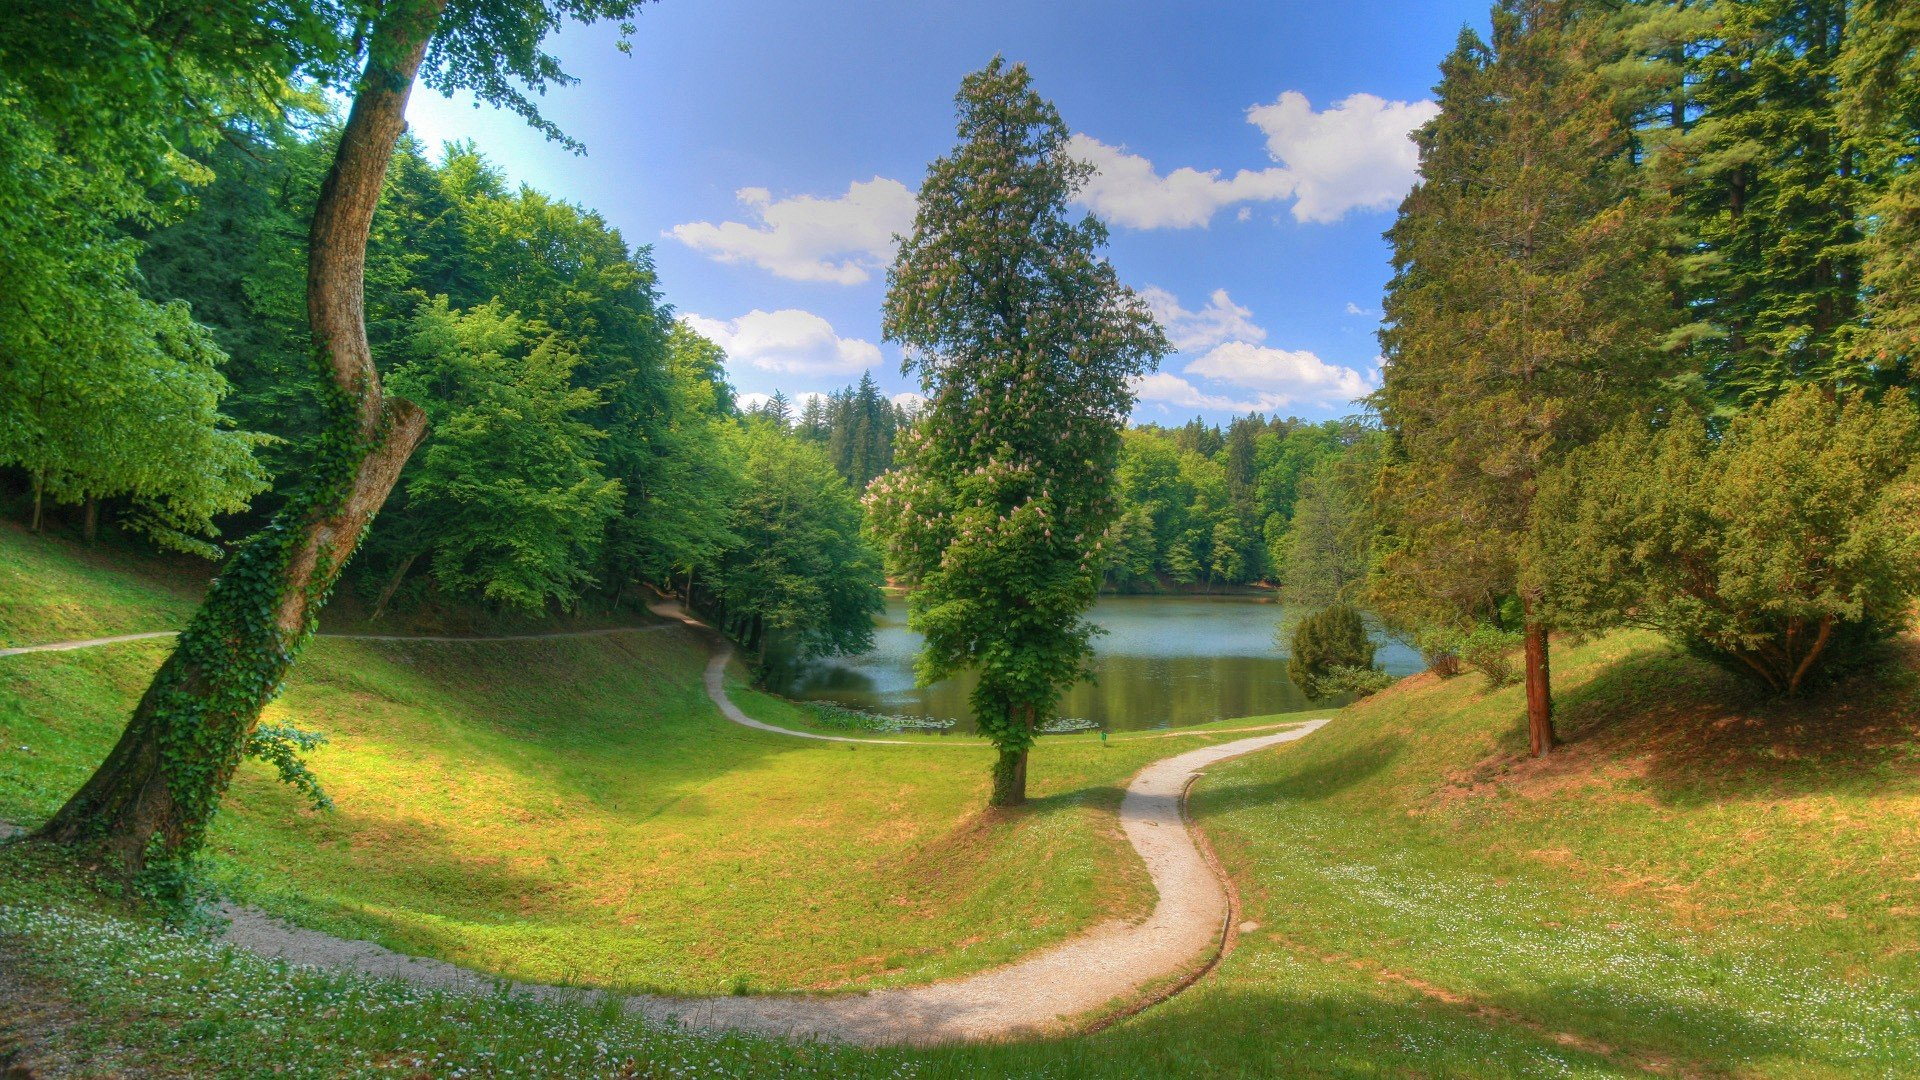 Homepage Nature and Landscape Nature HD wallpaper 1920x1080 12 1920x1080